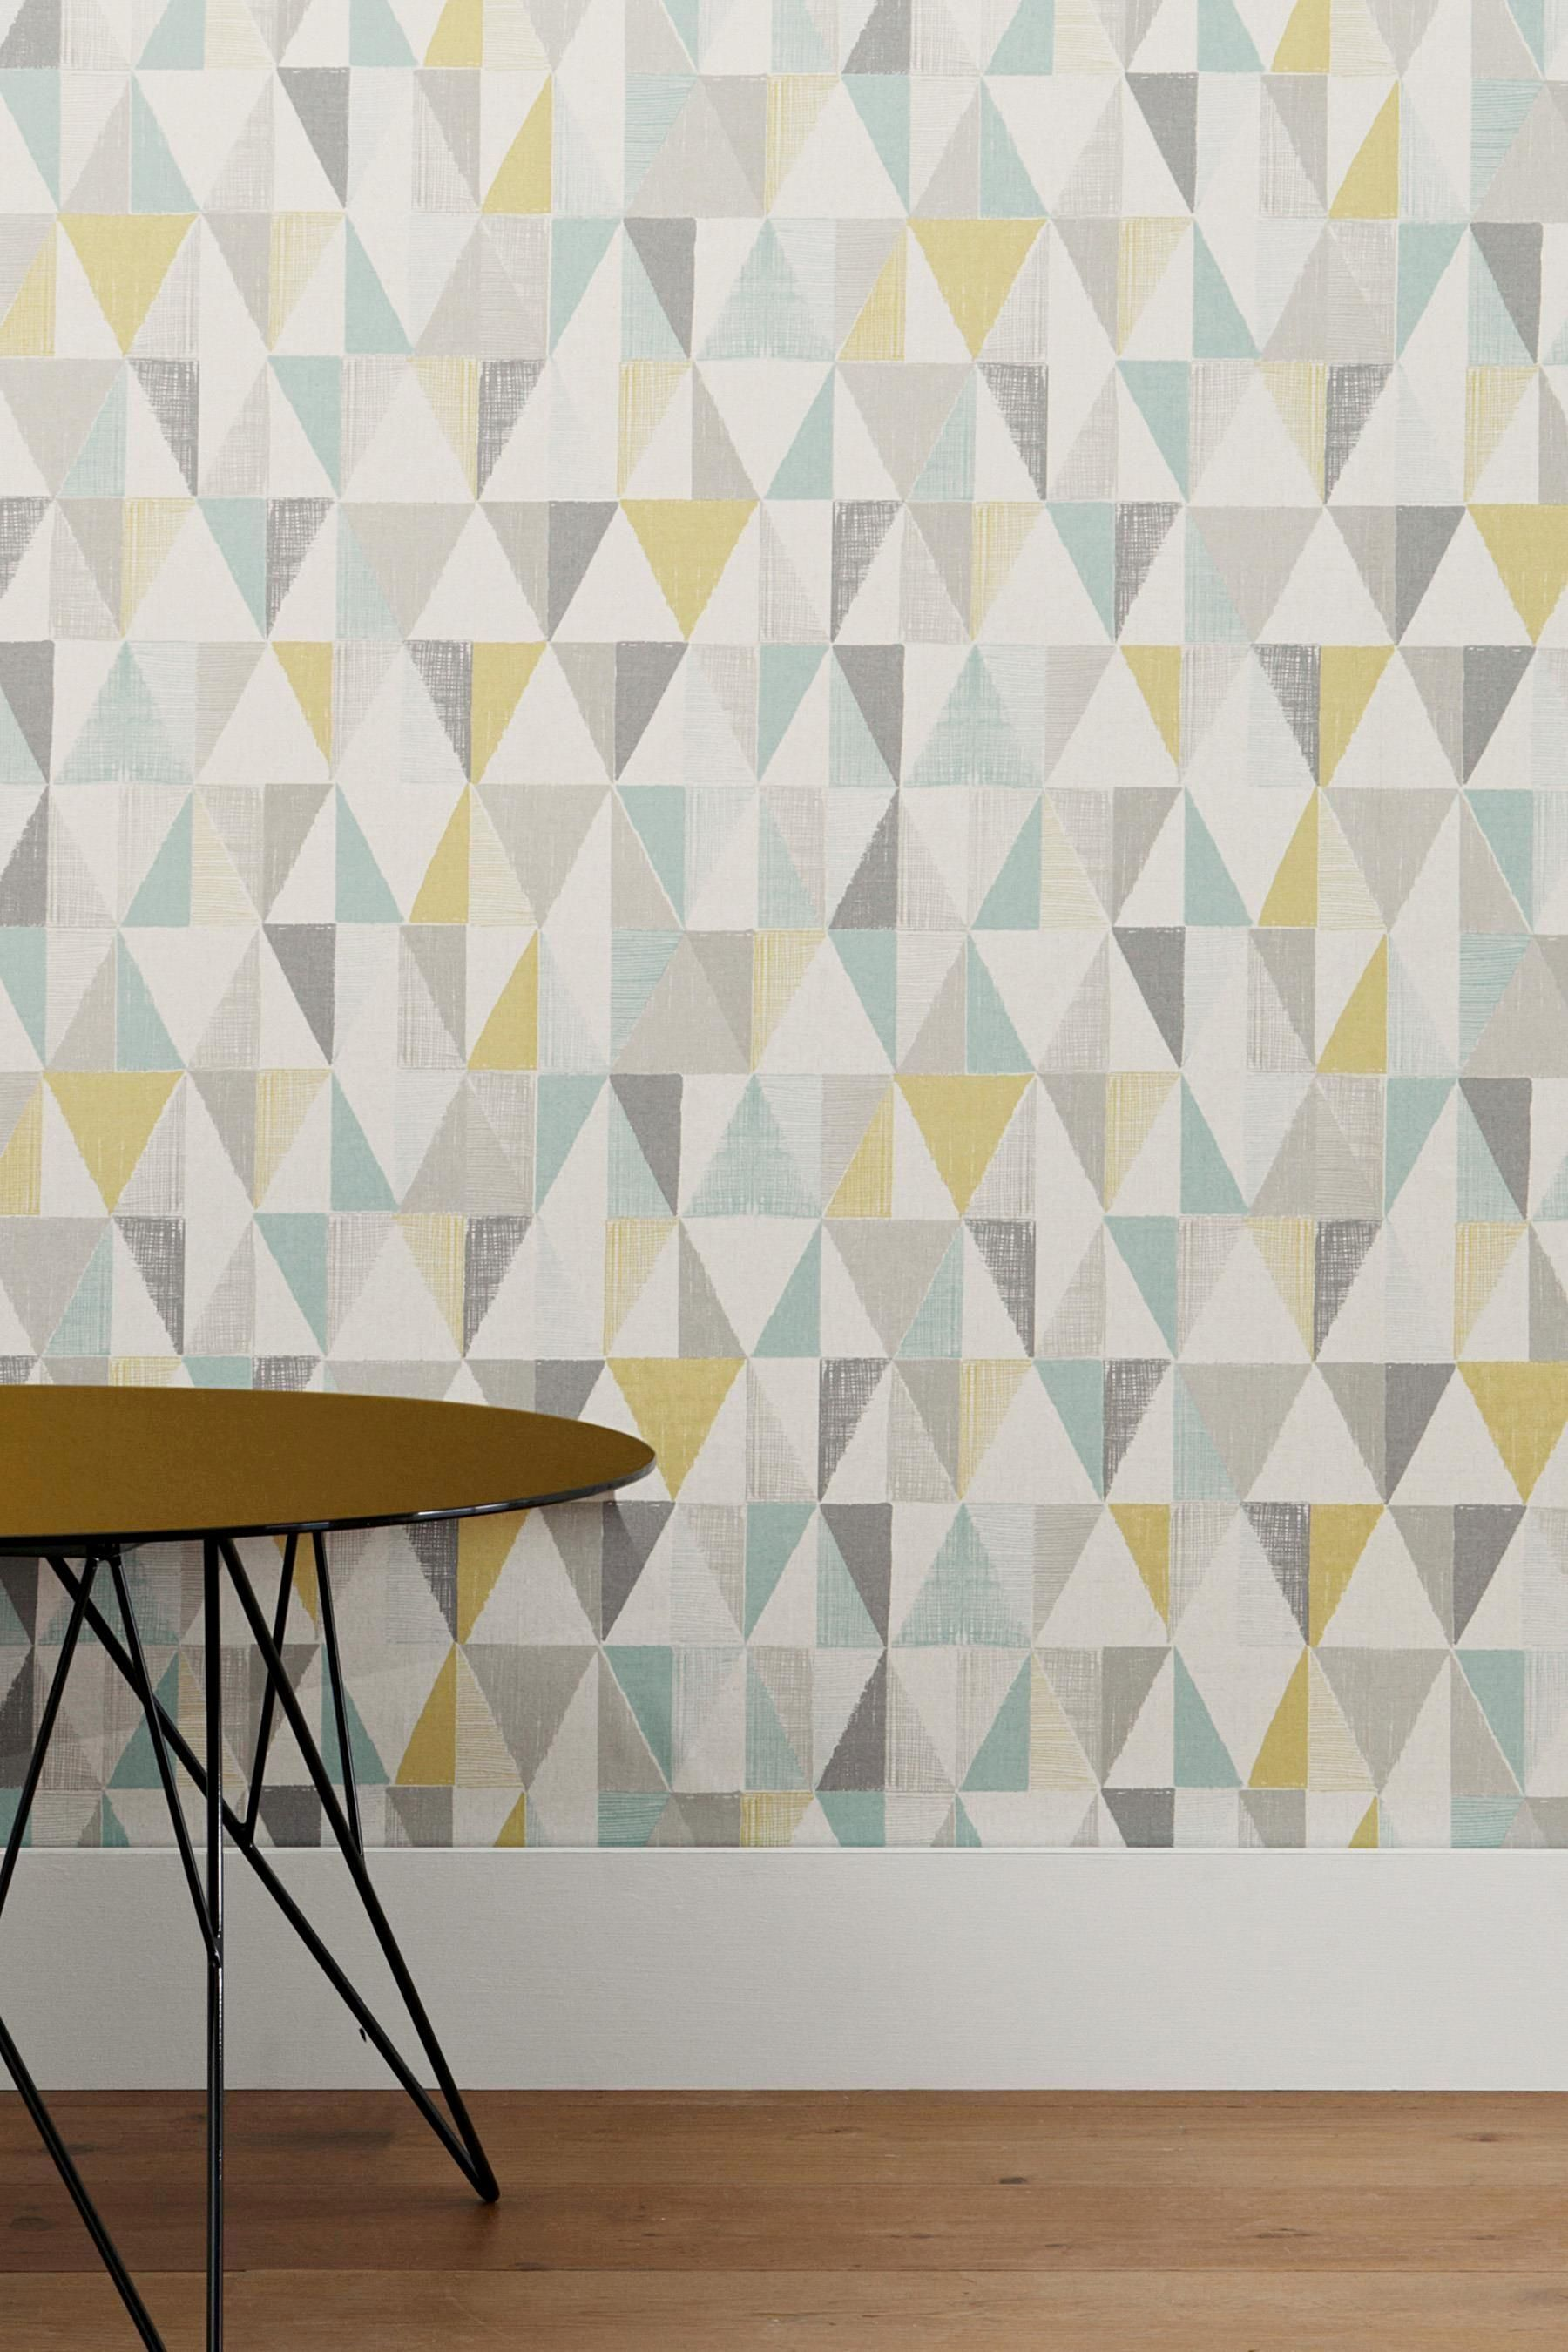 Affordable and stylish wallpaper from Next | Wallpaper, Wall ...